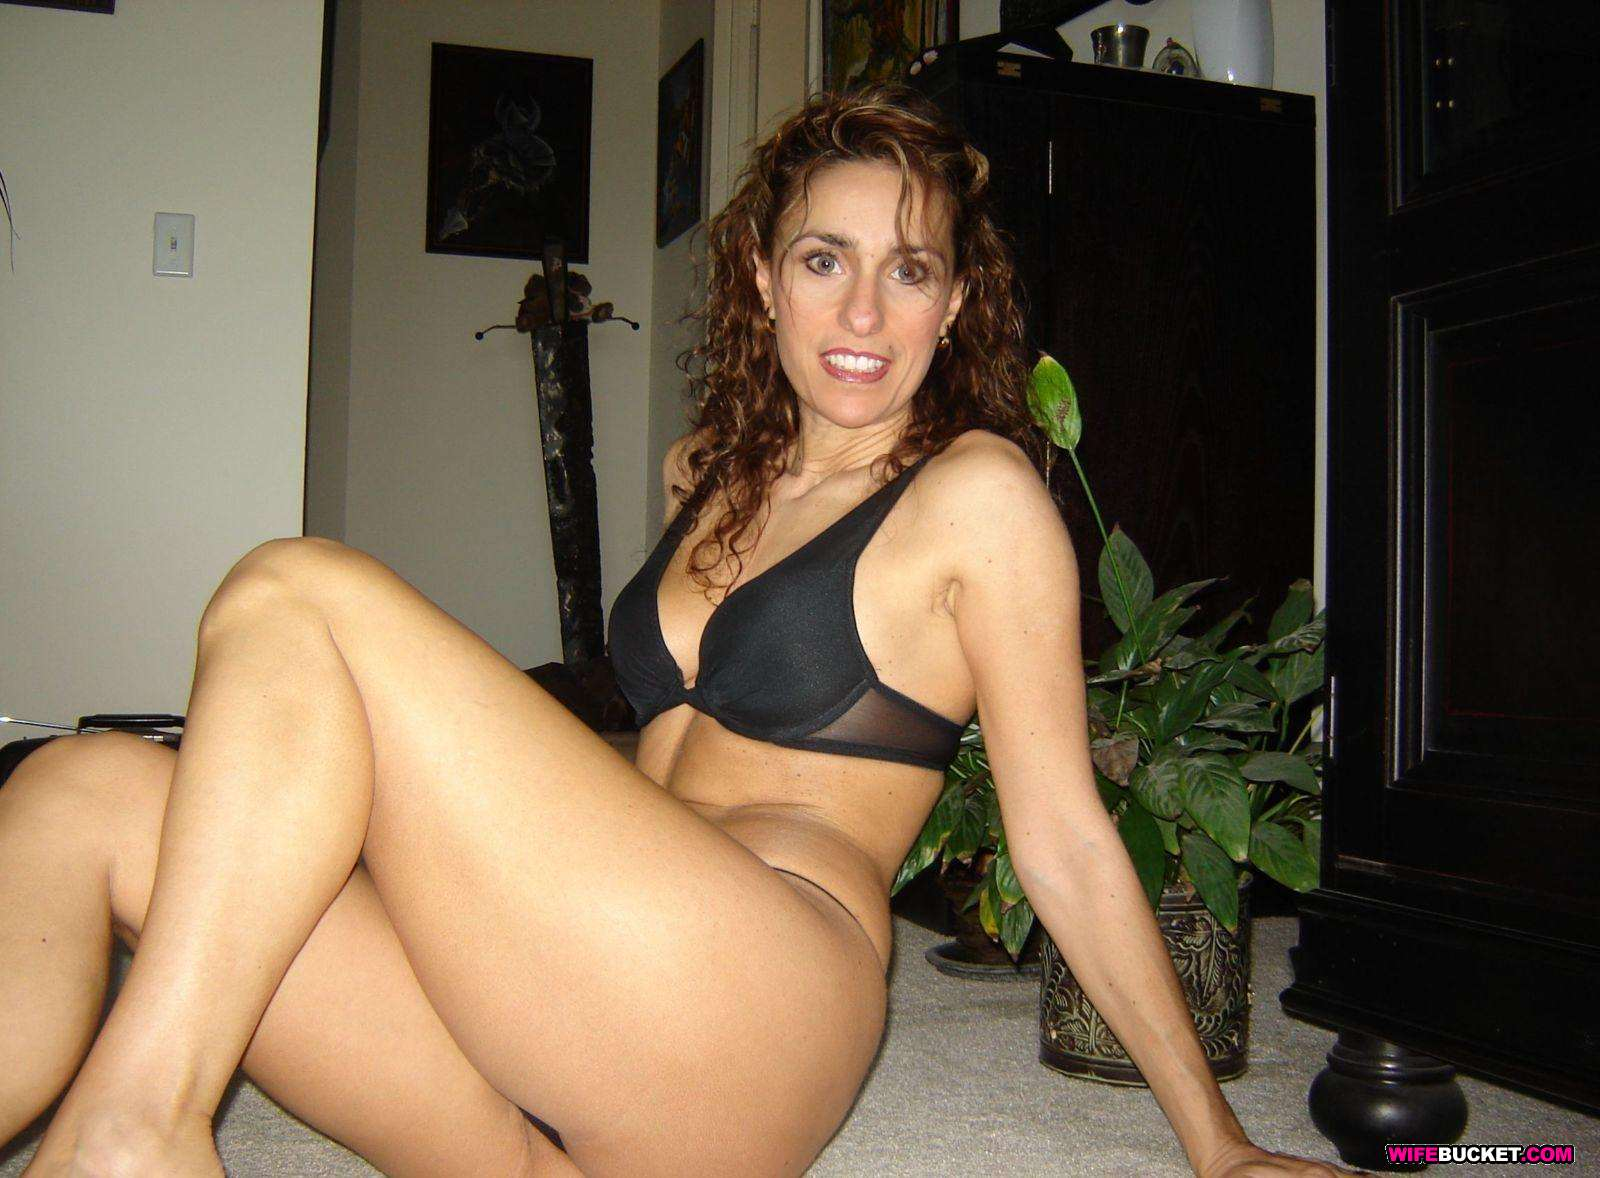 Real amateur milf and housewife my real life on my cams fo